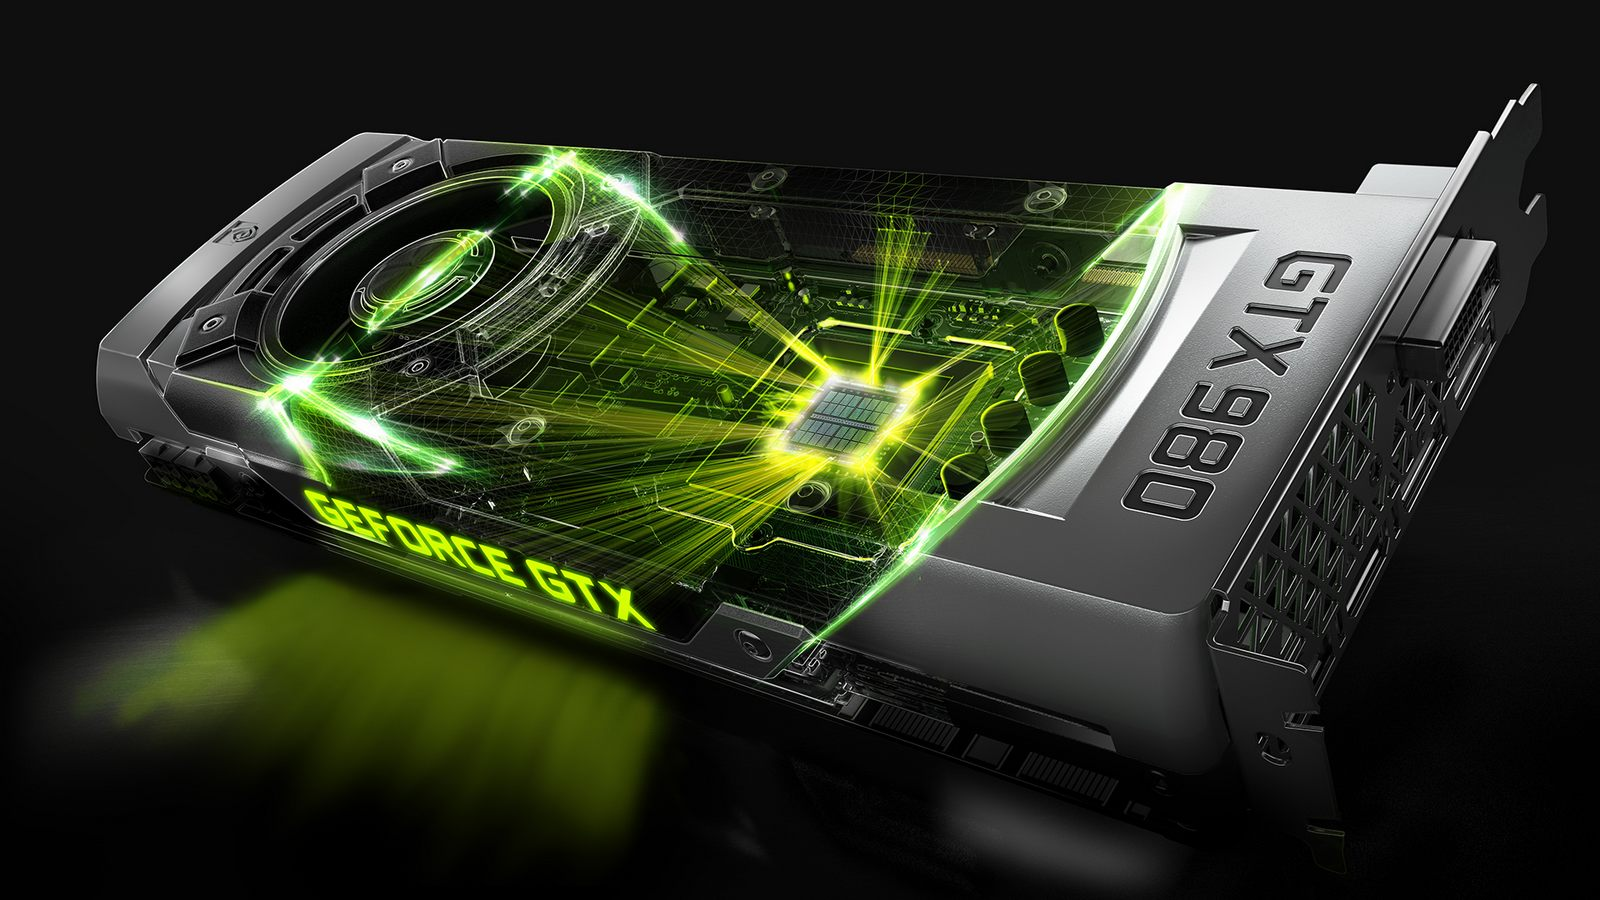 Nvidia Graphics Cards In Order Of Performance - CG Director